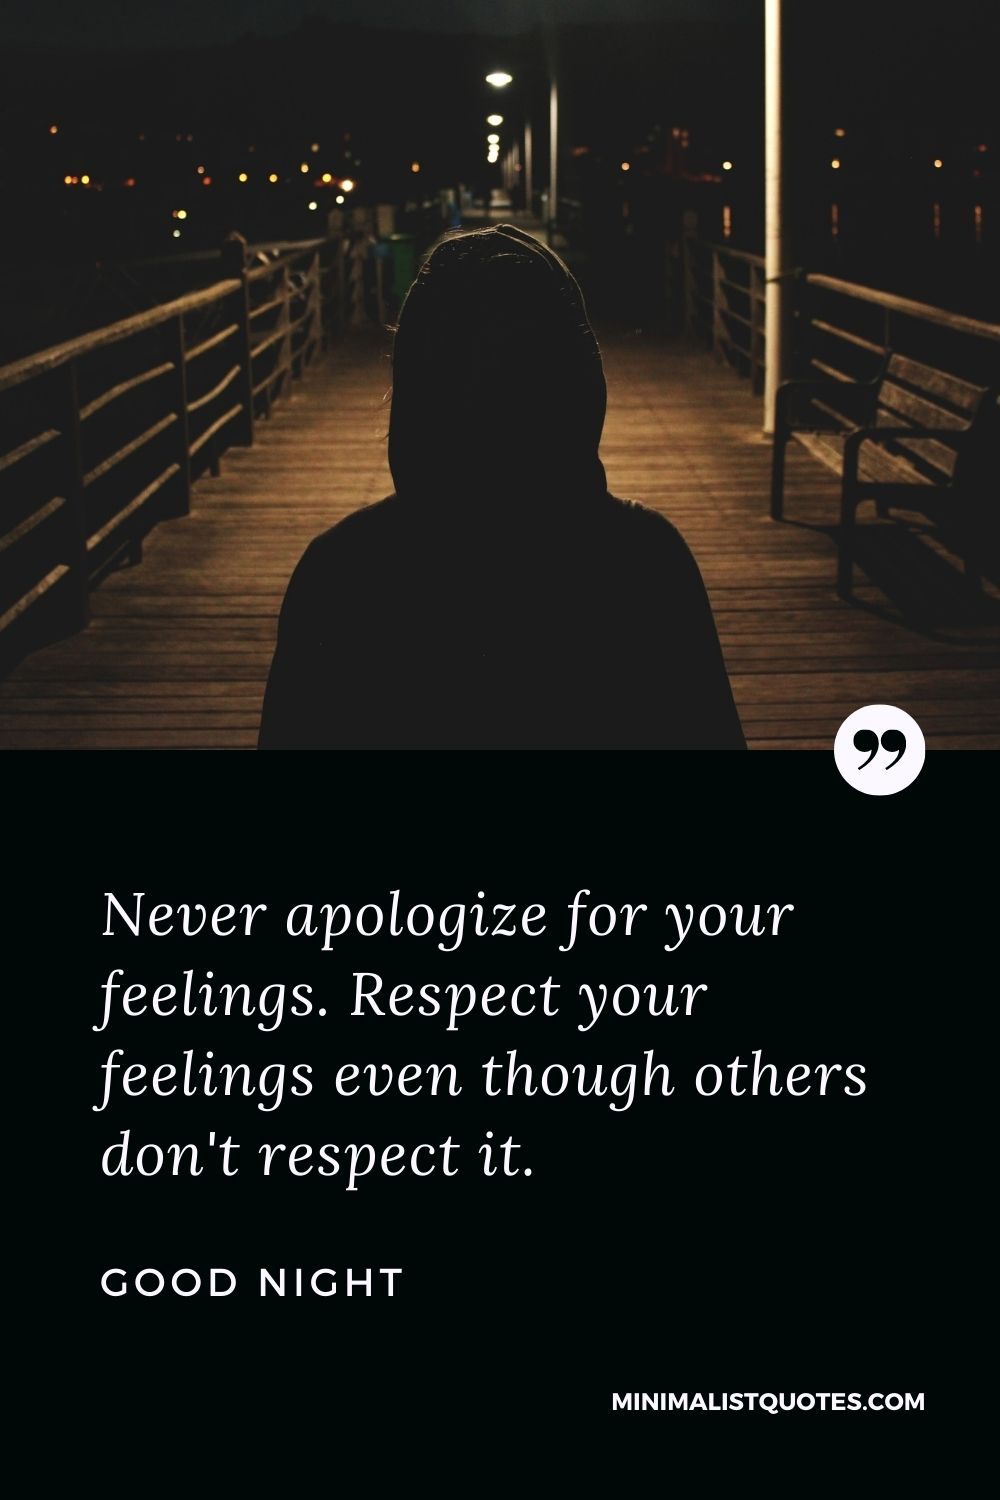 Good Night Wish & Message With Image: Never apologize for your feelings. Respect your feelings even though others don't respect it.